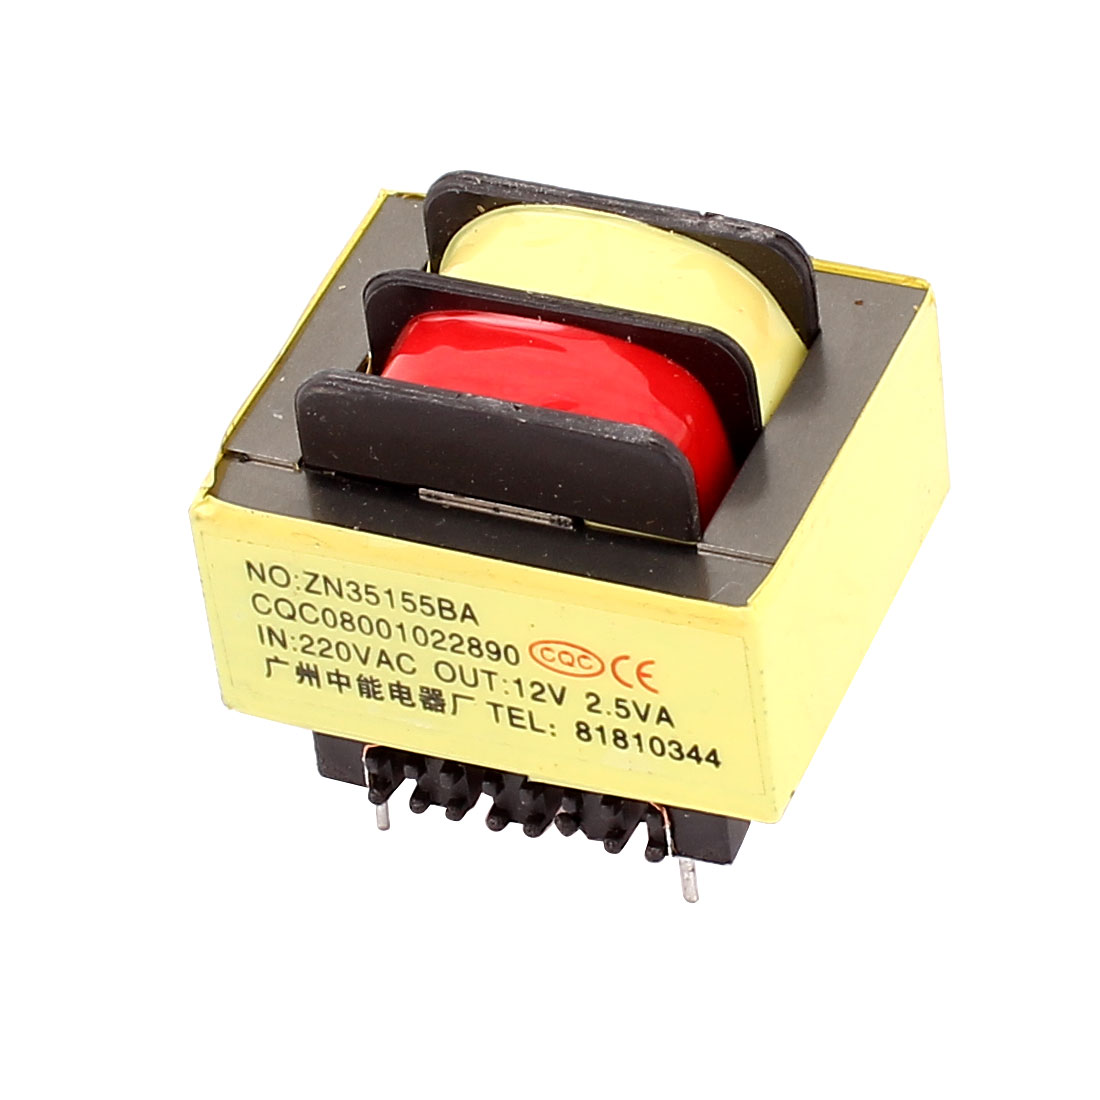 220V Input 12V 2.5VA Output Yellow Red Ferrite Core Power Transformer w 5 Terminals